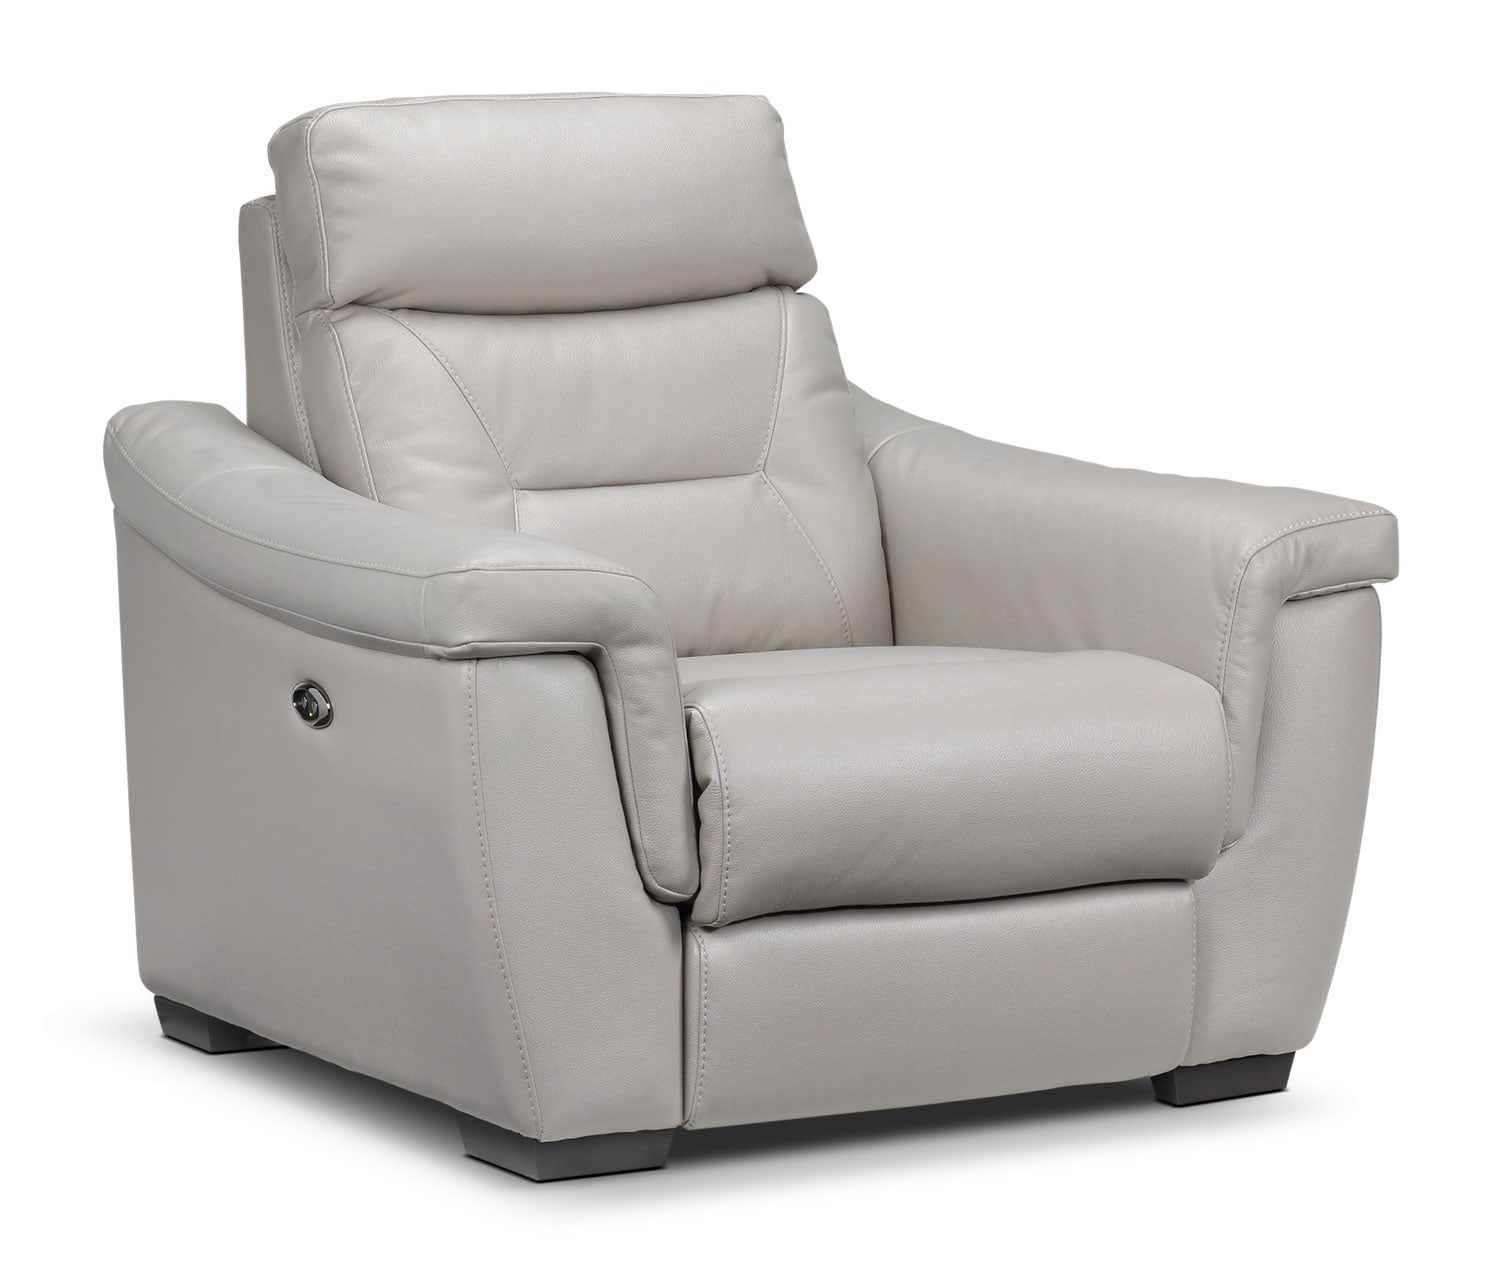 Living Room Furniture - Ralston Power Recliner - Silver-Grey